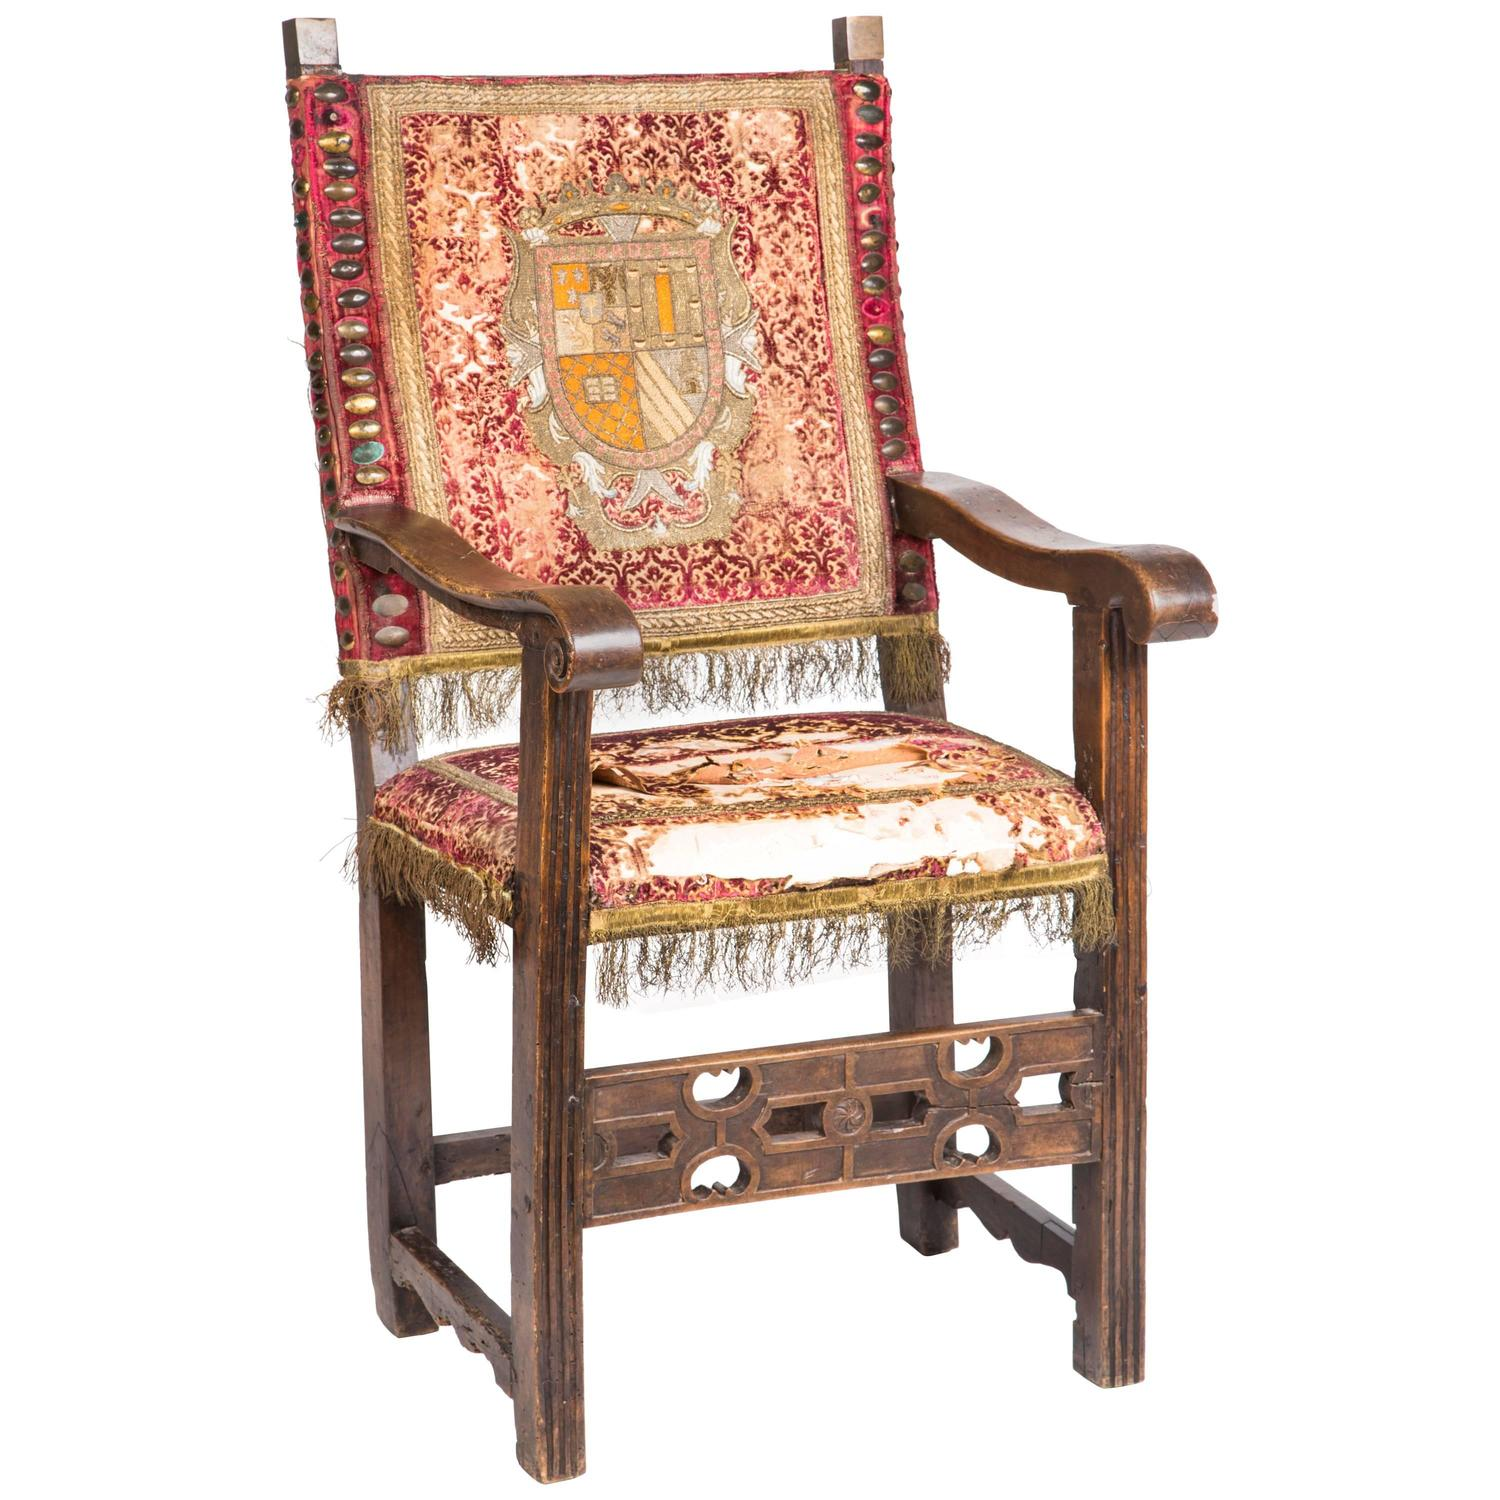 Spanish baroque walnut armchair for sale at 1stdibs for Spanish baroque furniture